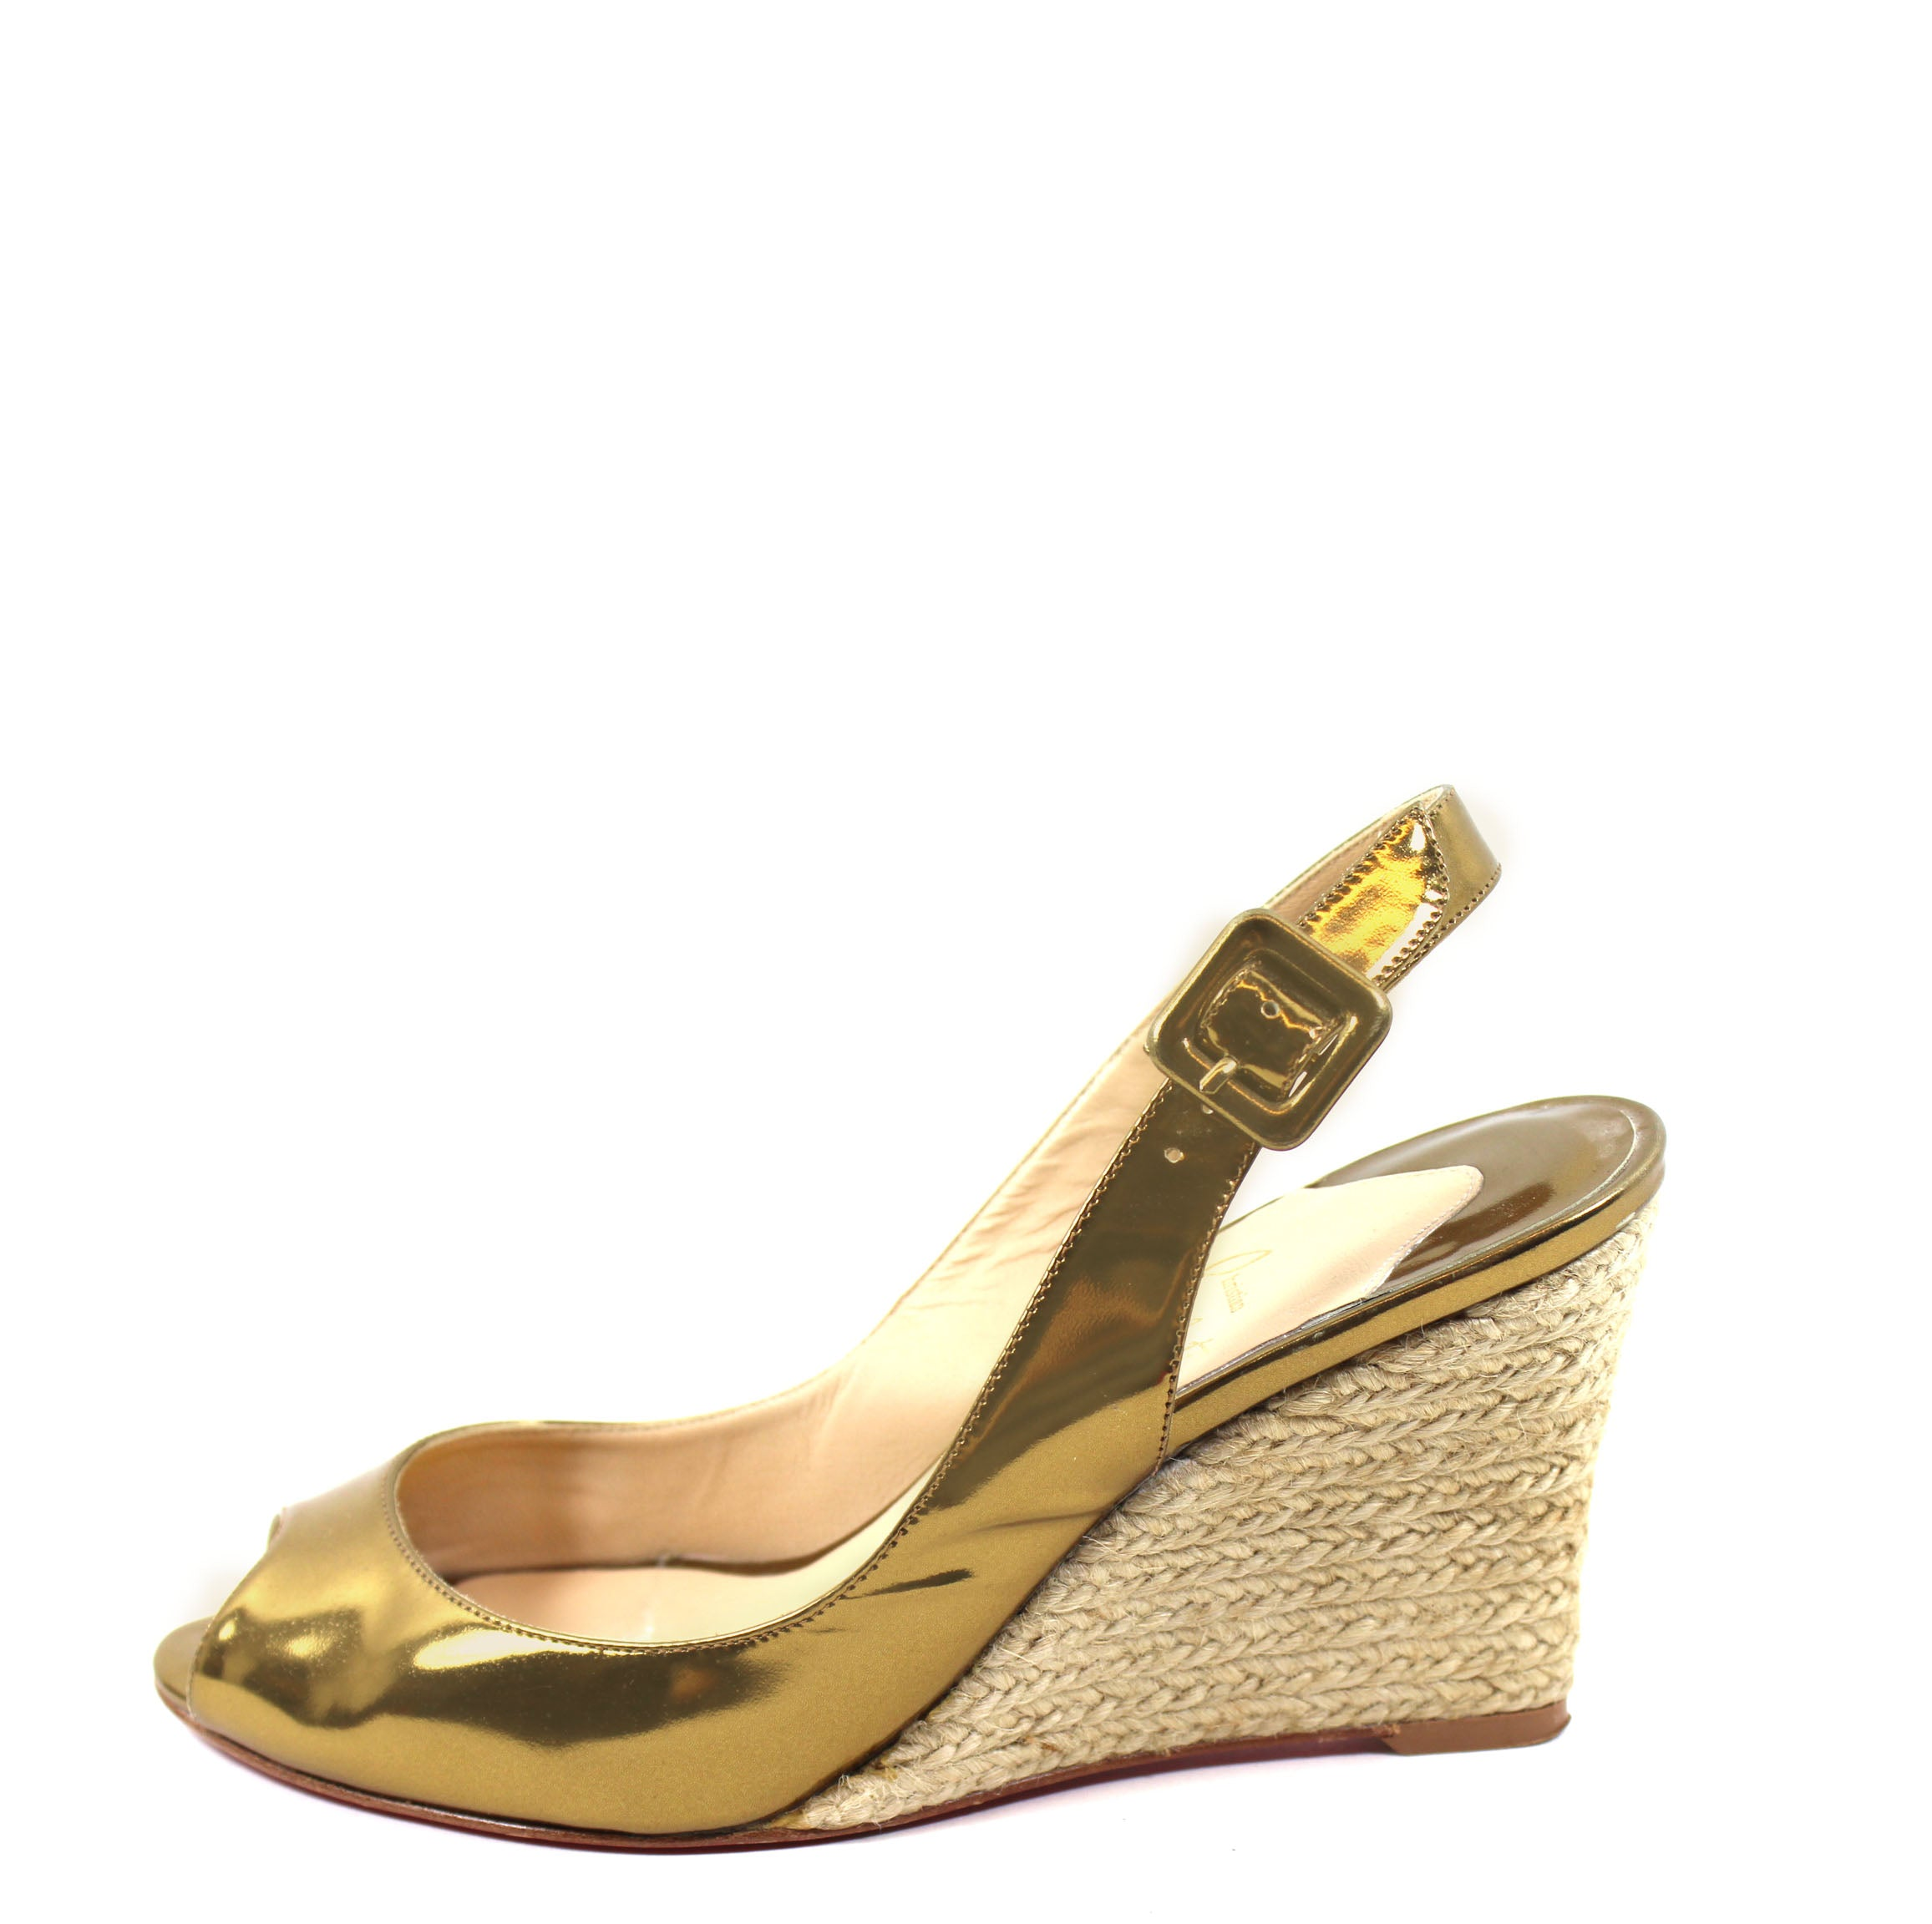 783e3d139a6 where to buy louboutin wedges gold 3d6b8 b3a3e